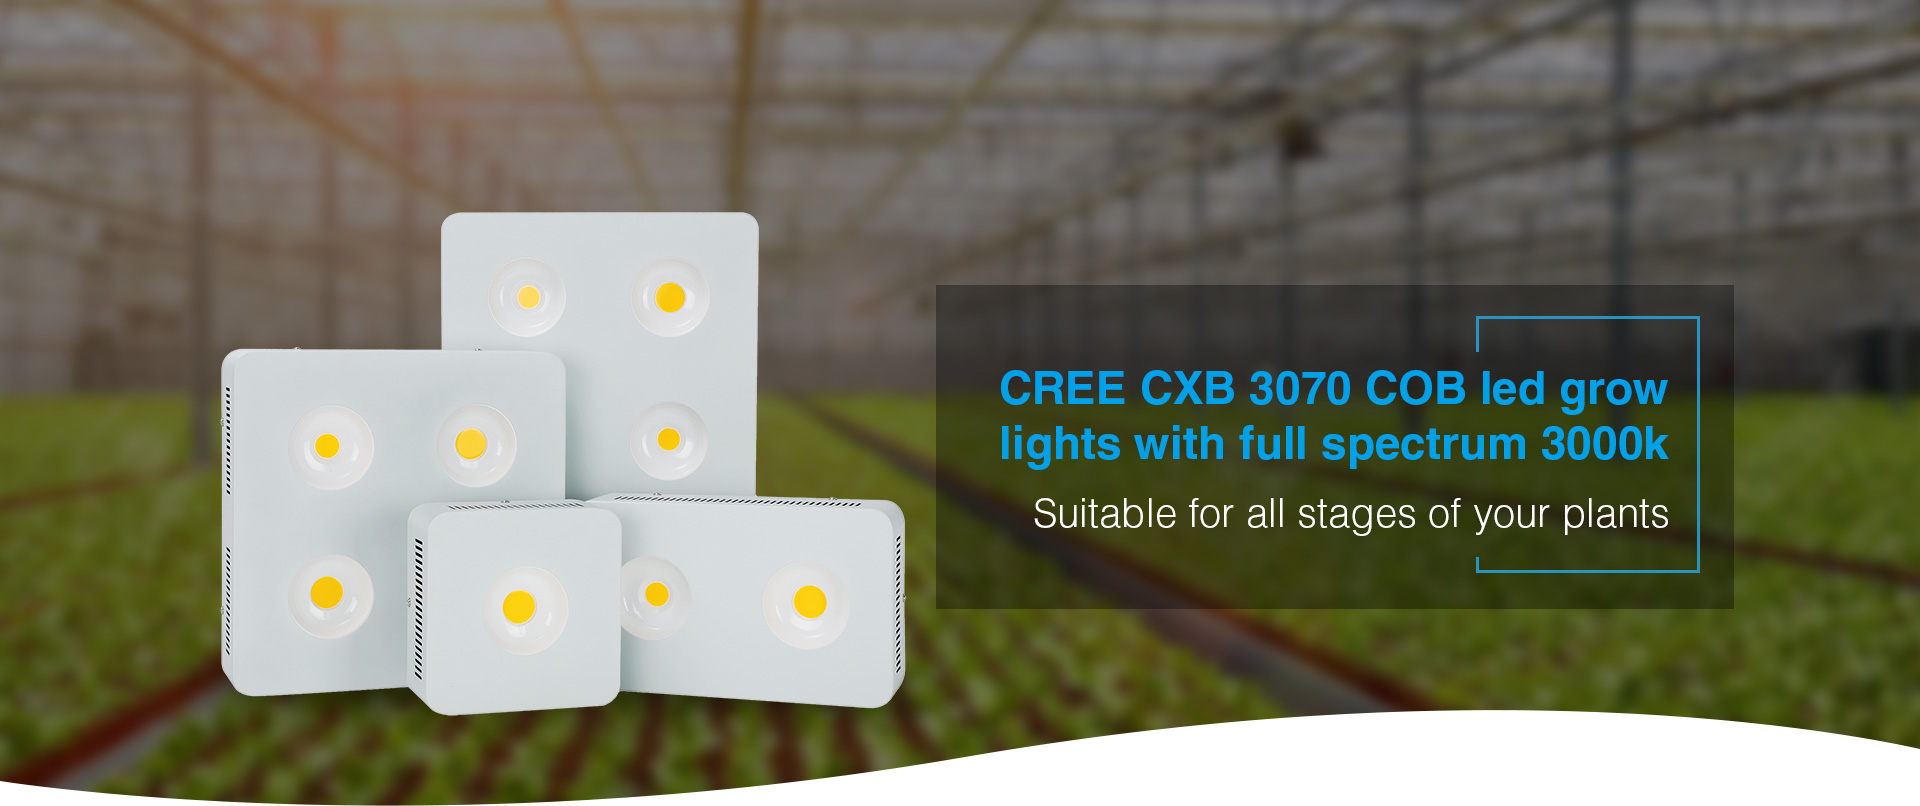 CREE CXB 3070 COB led grow light